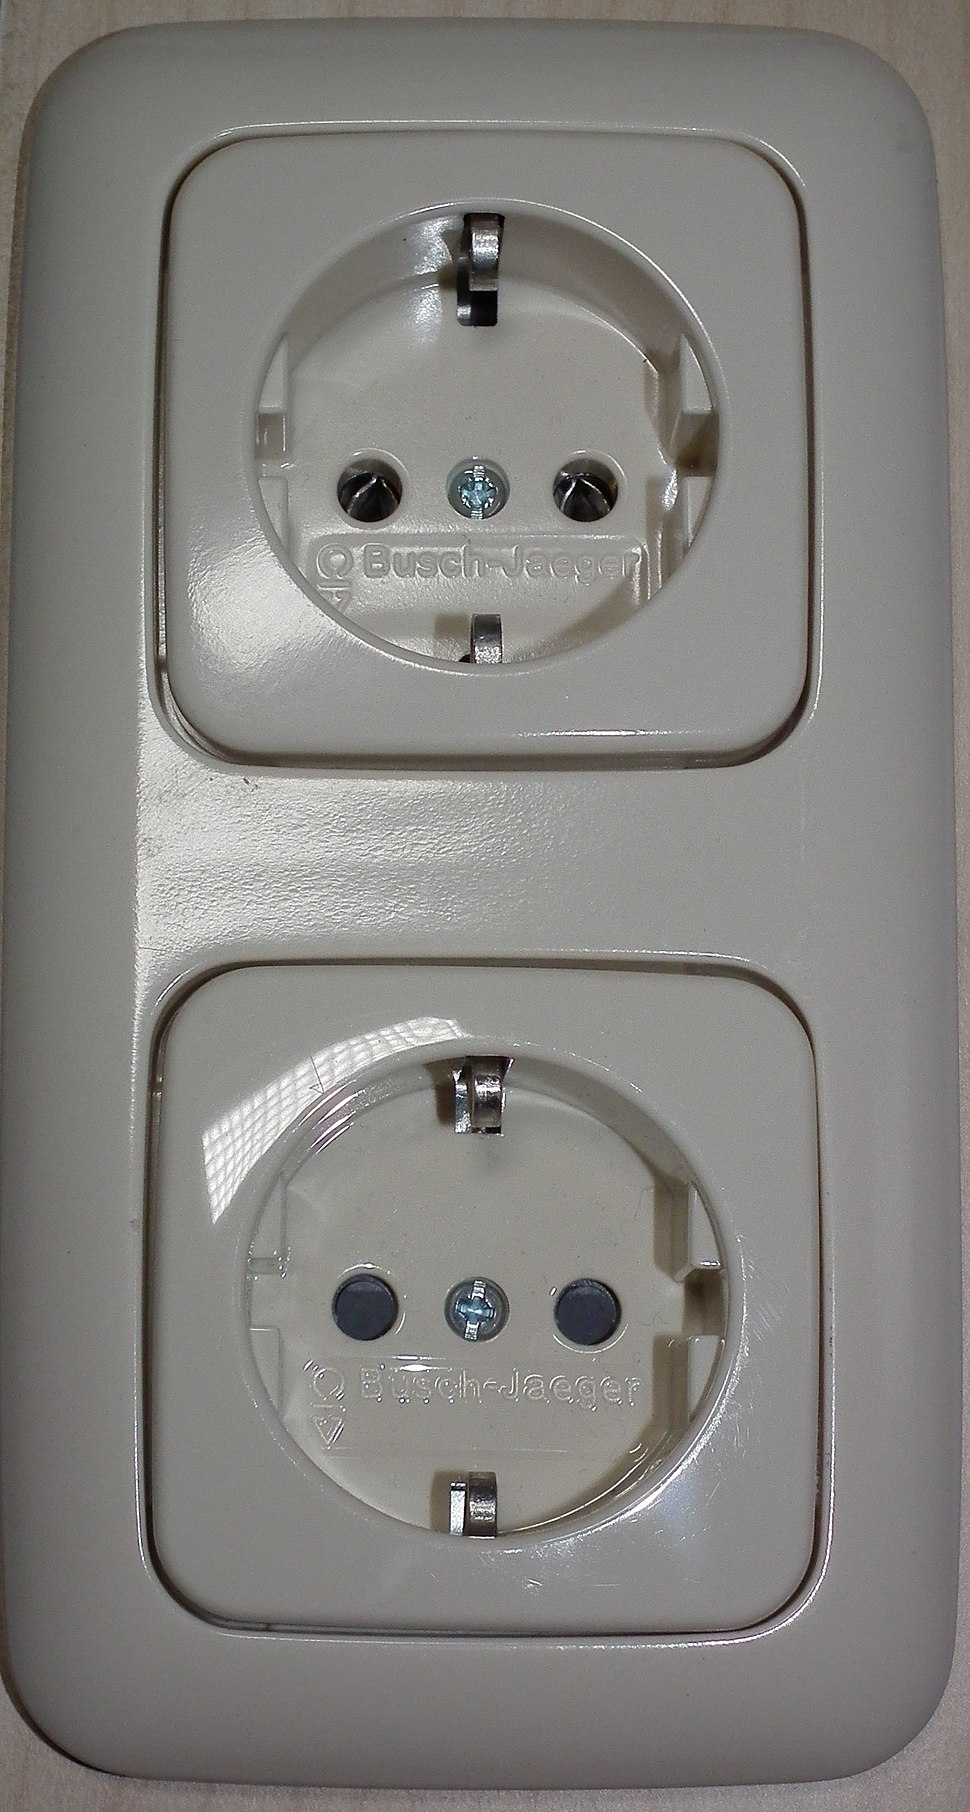 Schuko (CEE 7-3) socket-outlets, with and without shutters